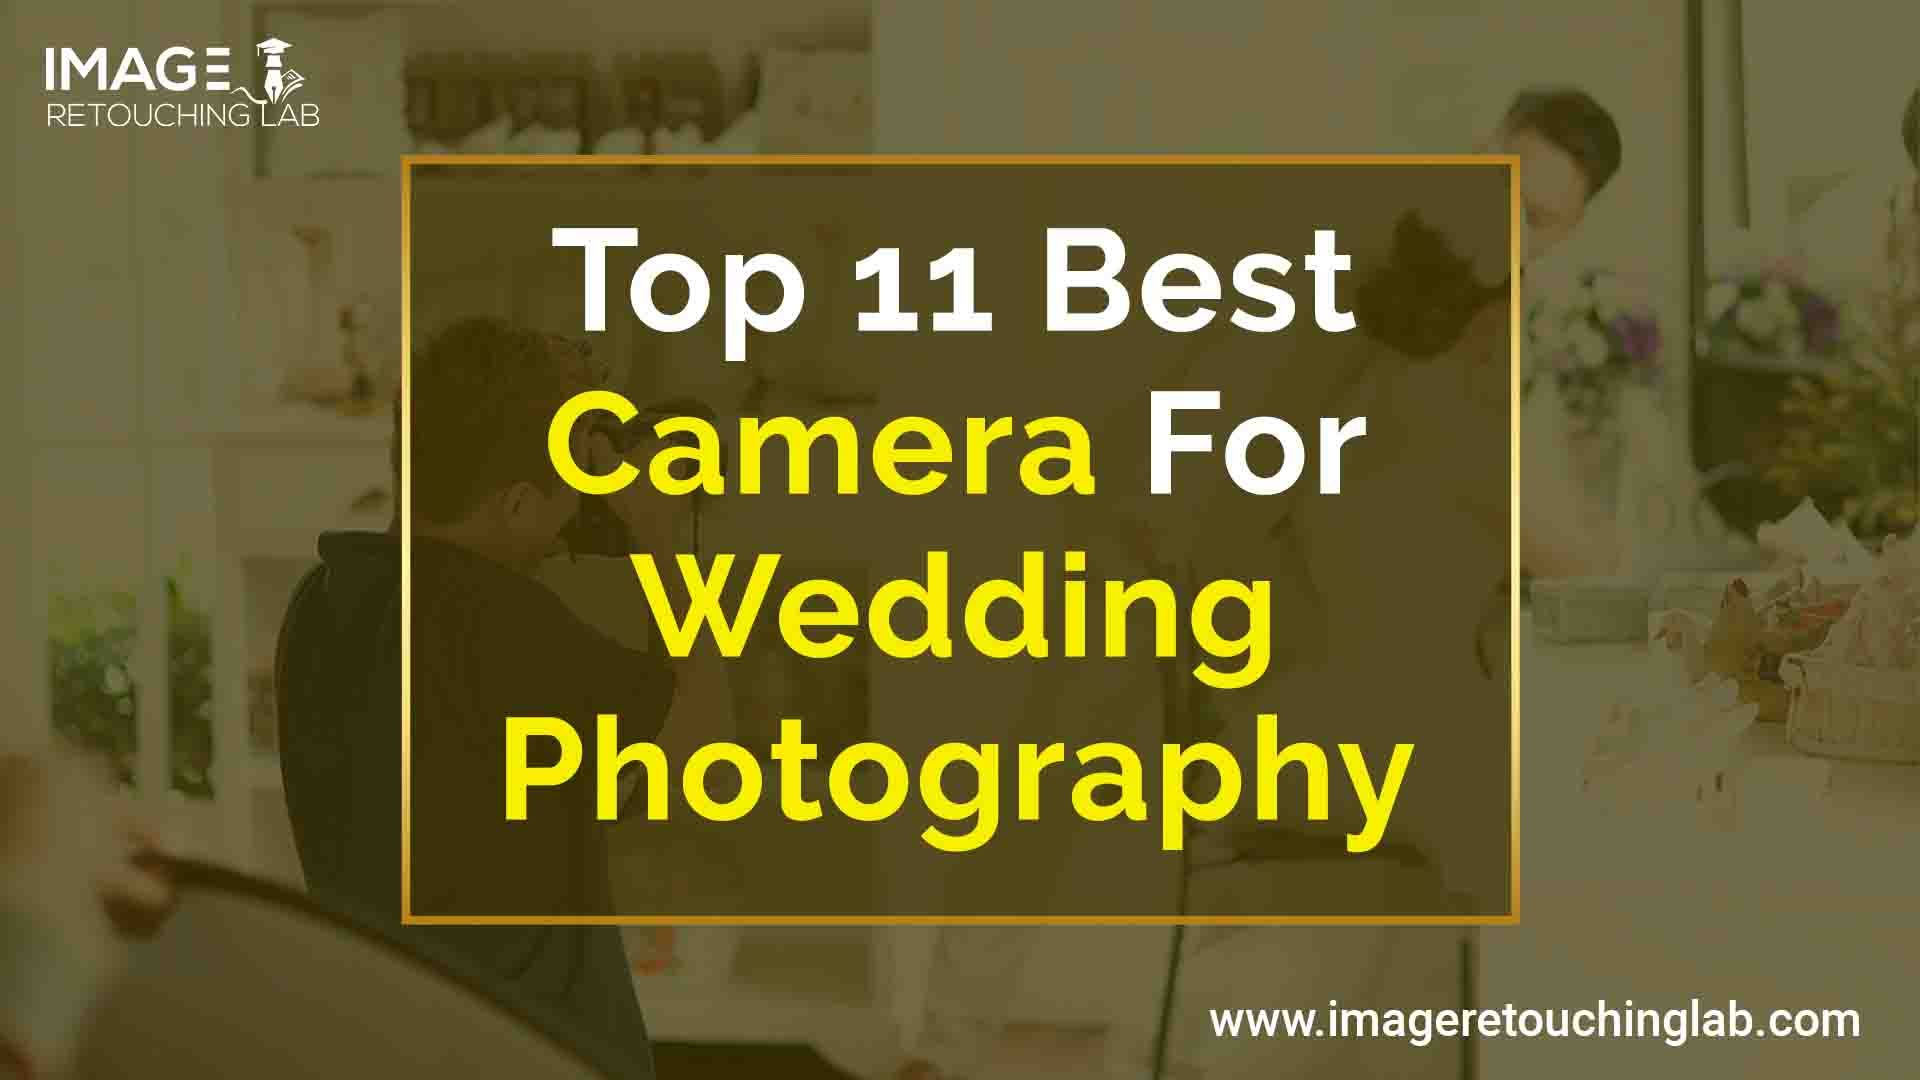 In this way, if you want the best camera for wedding photography you have to consider a lot of things to pick up the best one.   #photography #photographylovers #photographysouls #photographyeveryday #photographyislife #photographylover #photographyislifee #photographylife #photographyart #imageretouchinglab